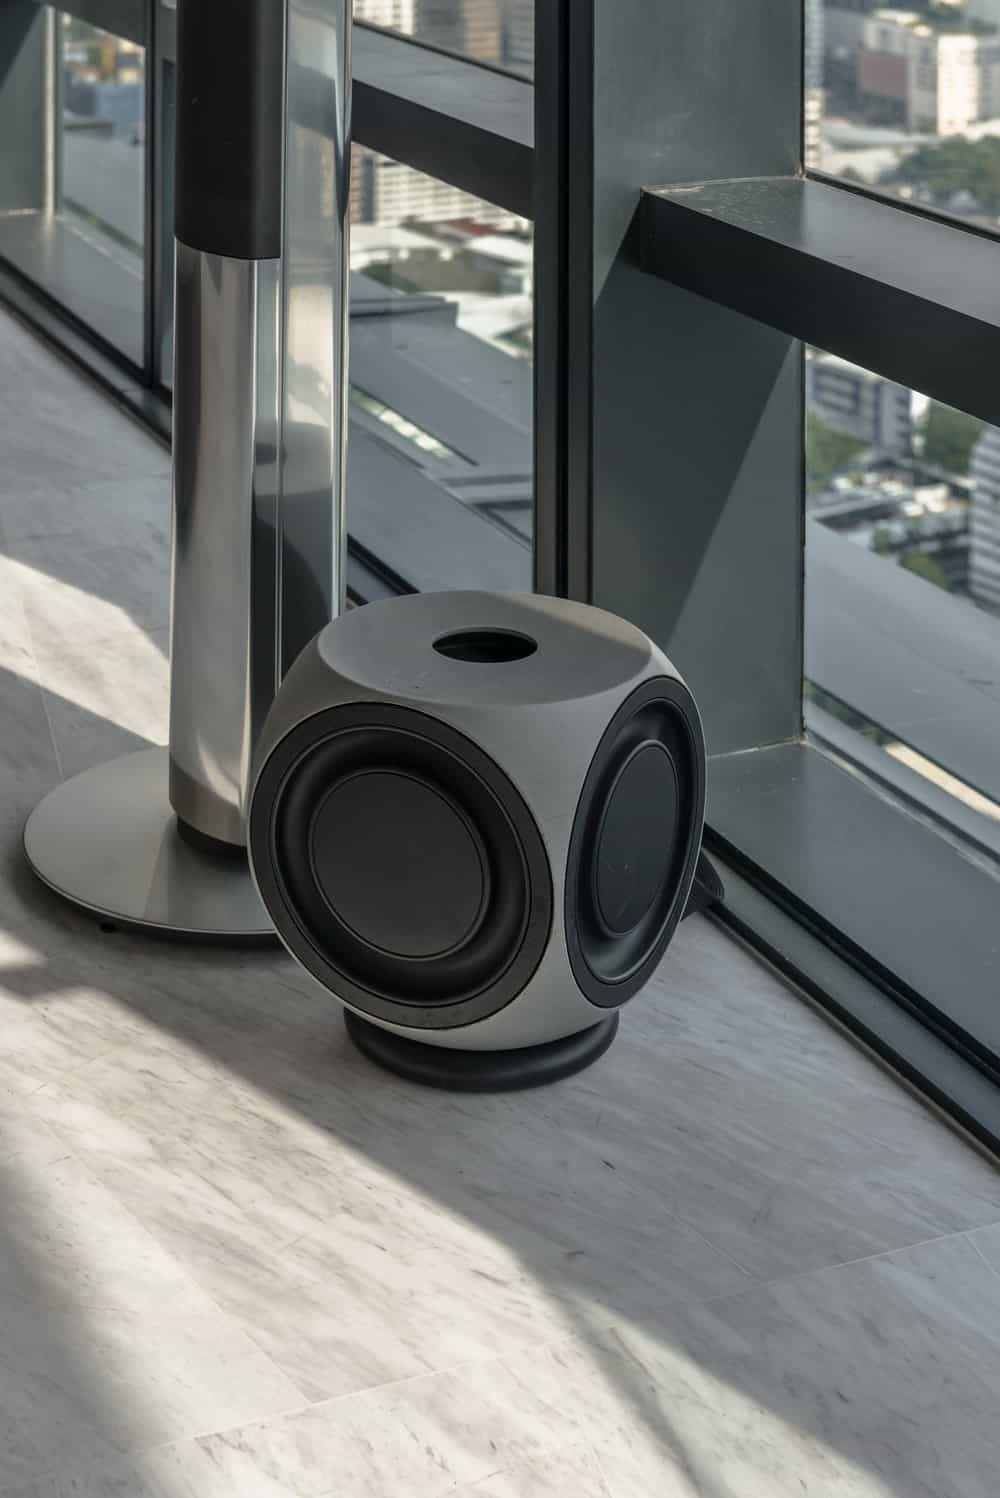 On one corner of the bedroom is this modern stereo speaker by the window.